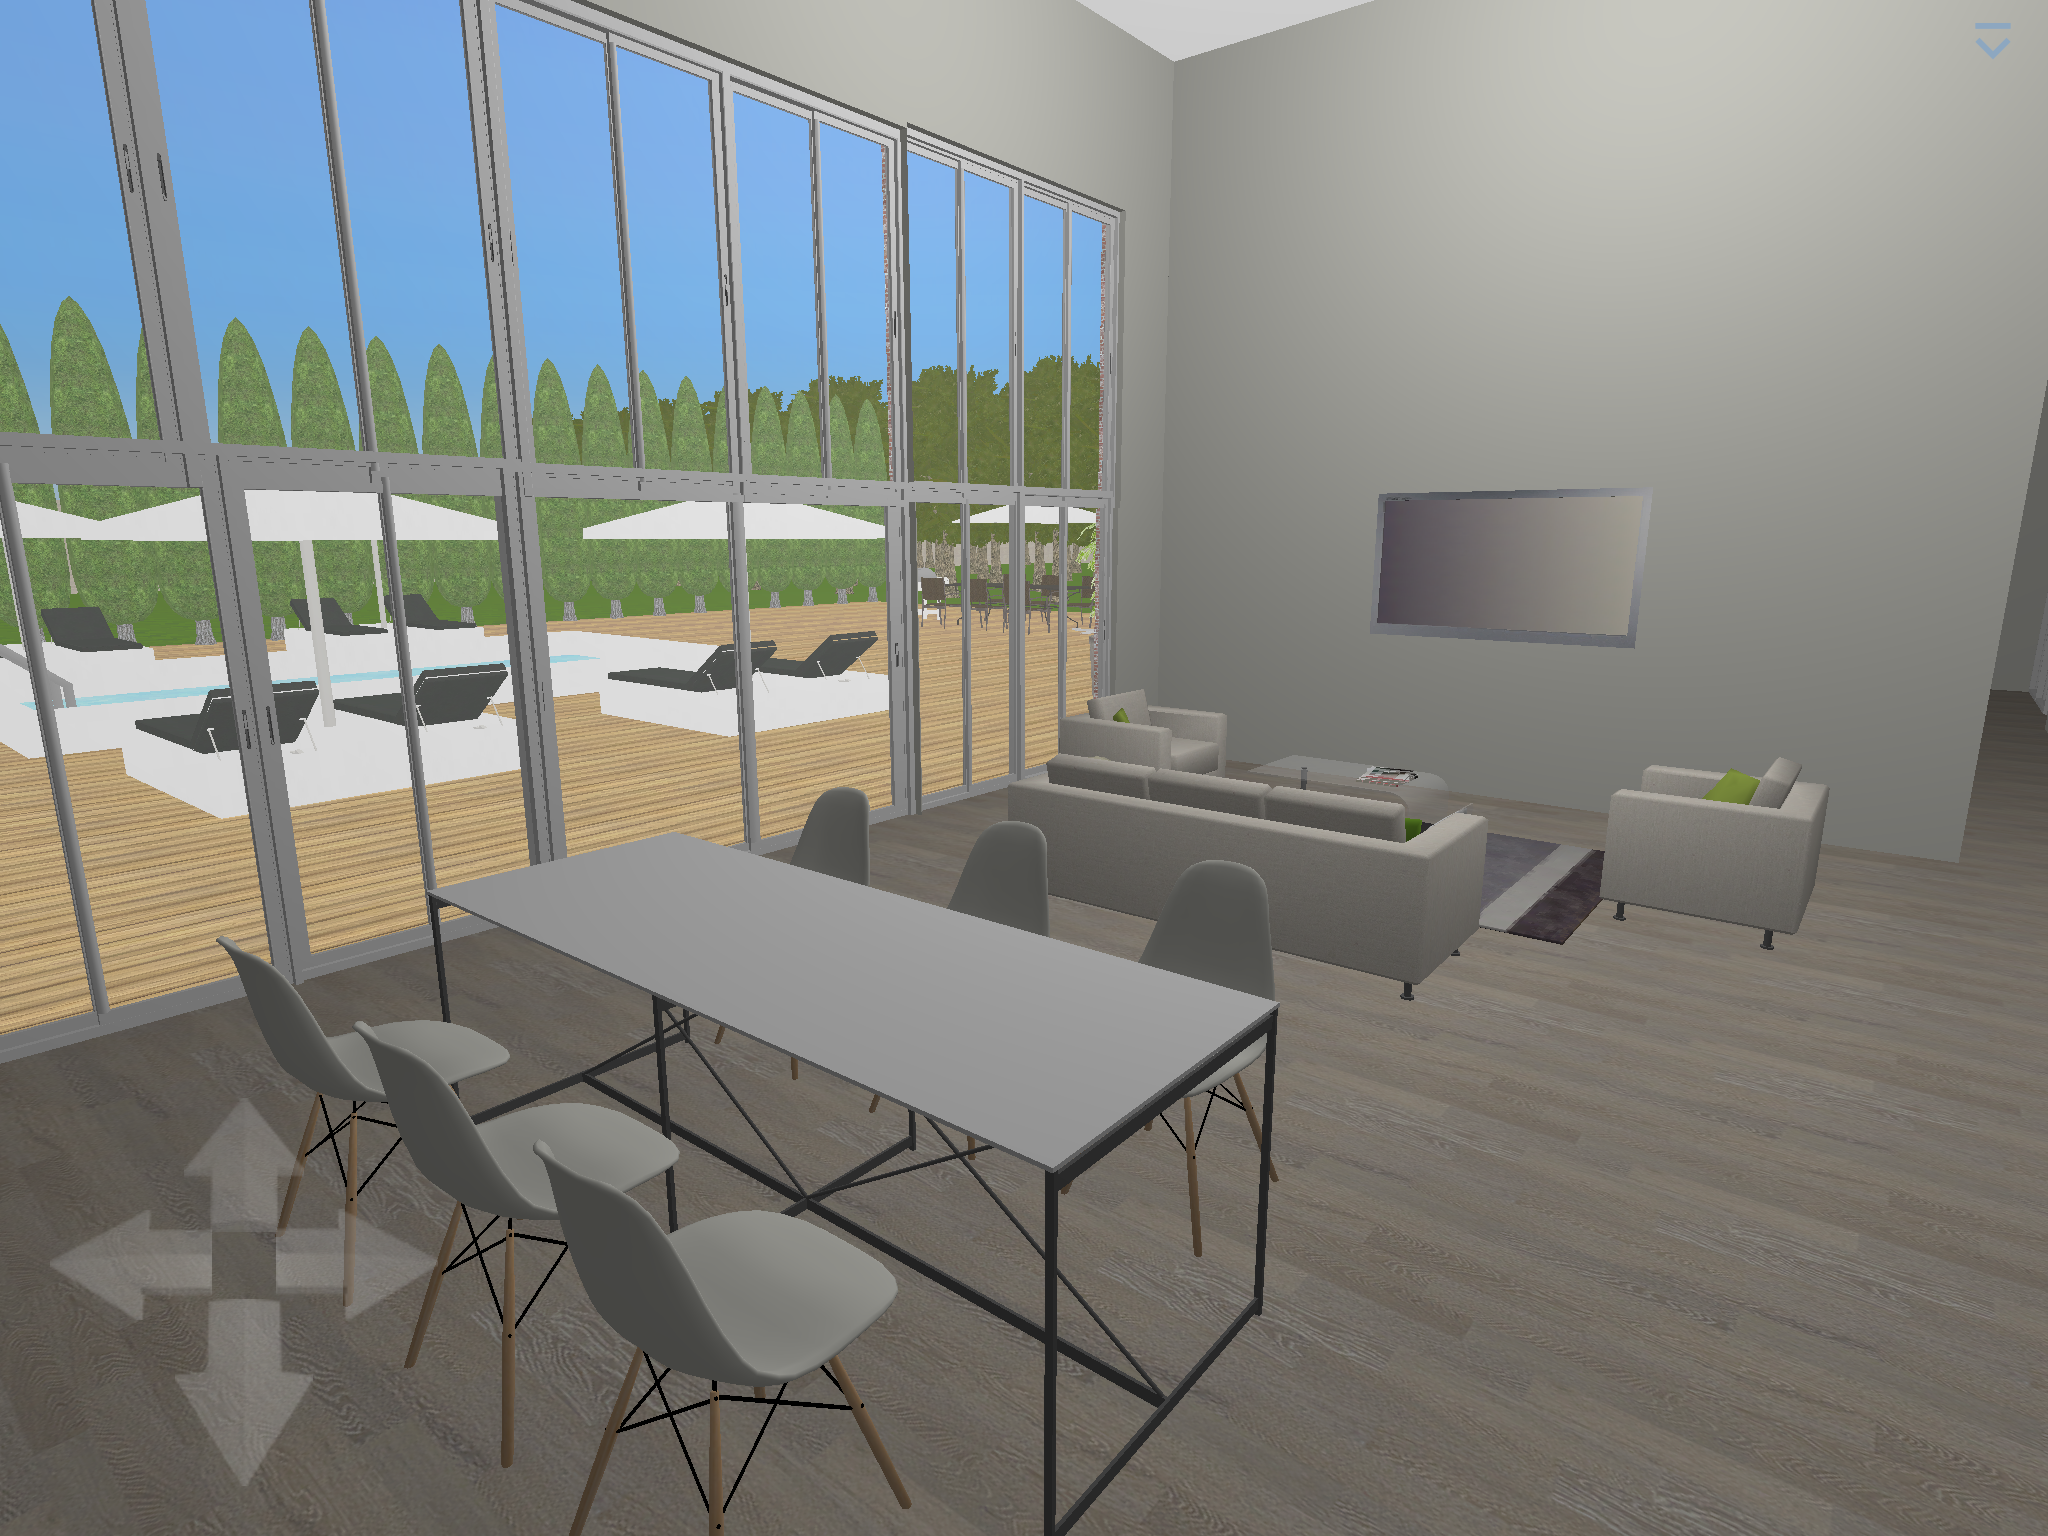 plan 3d salon salle manger logiciel home design 3d gold - Home Design 3d Gold